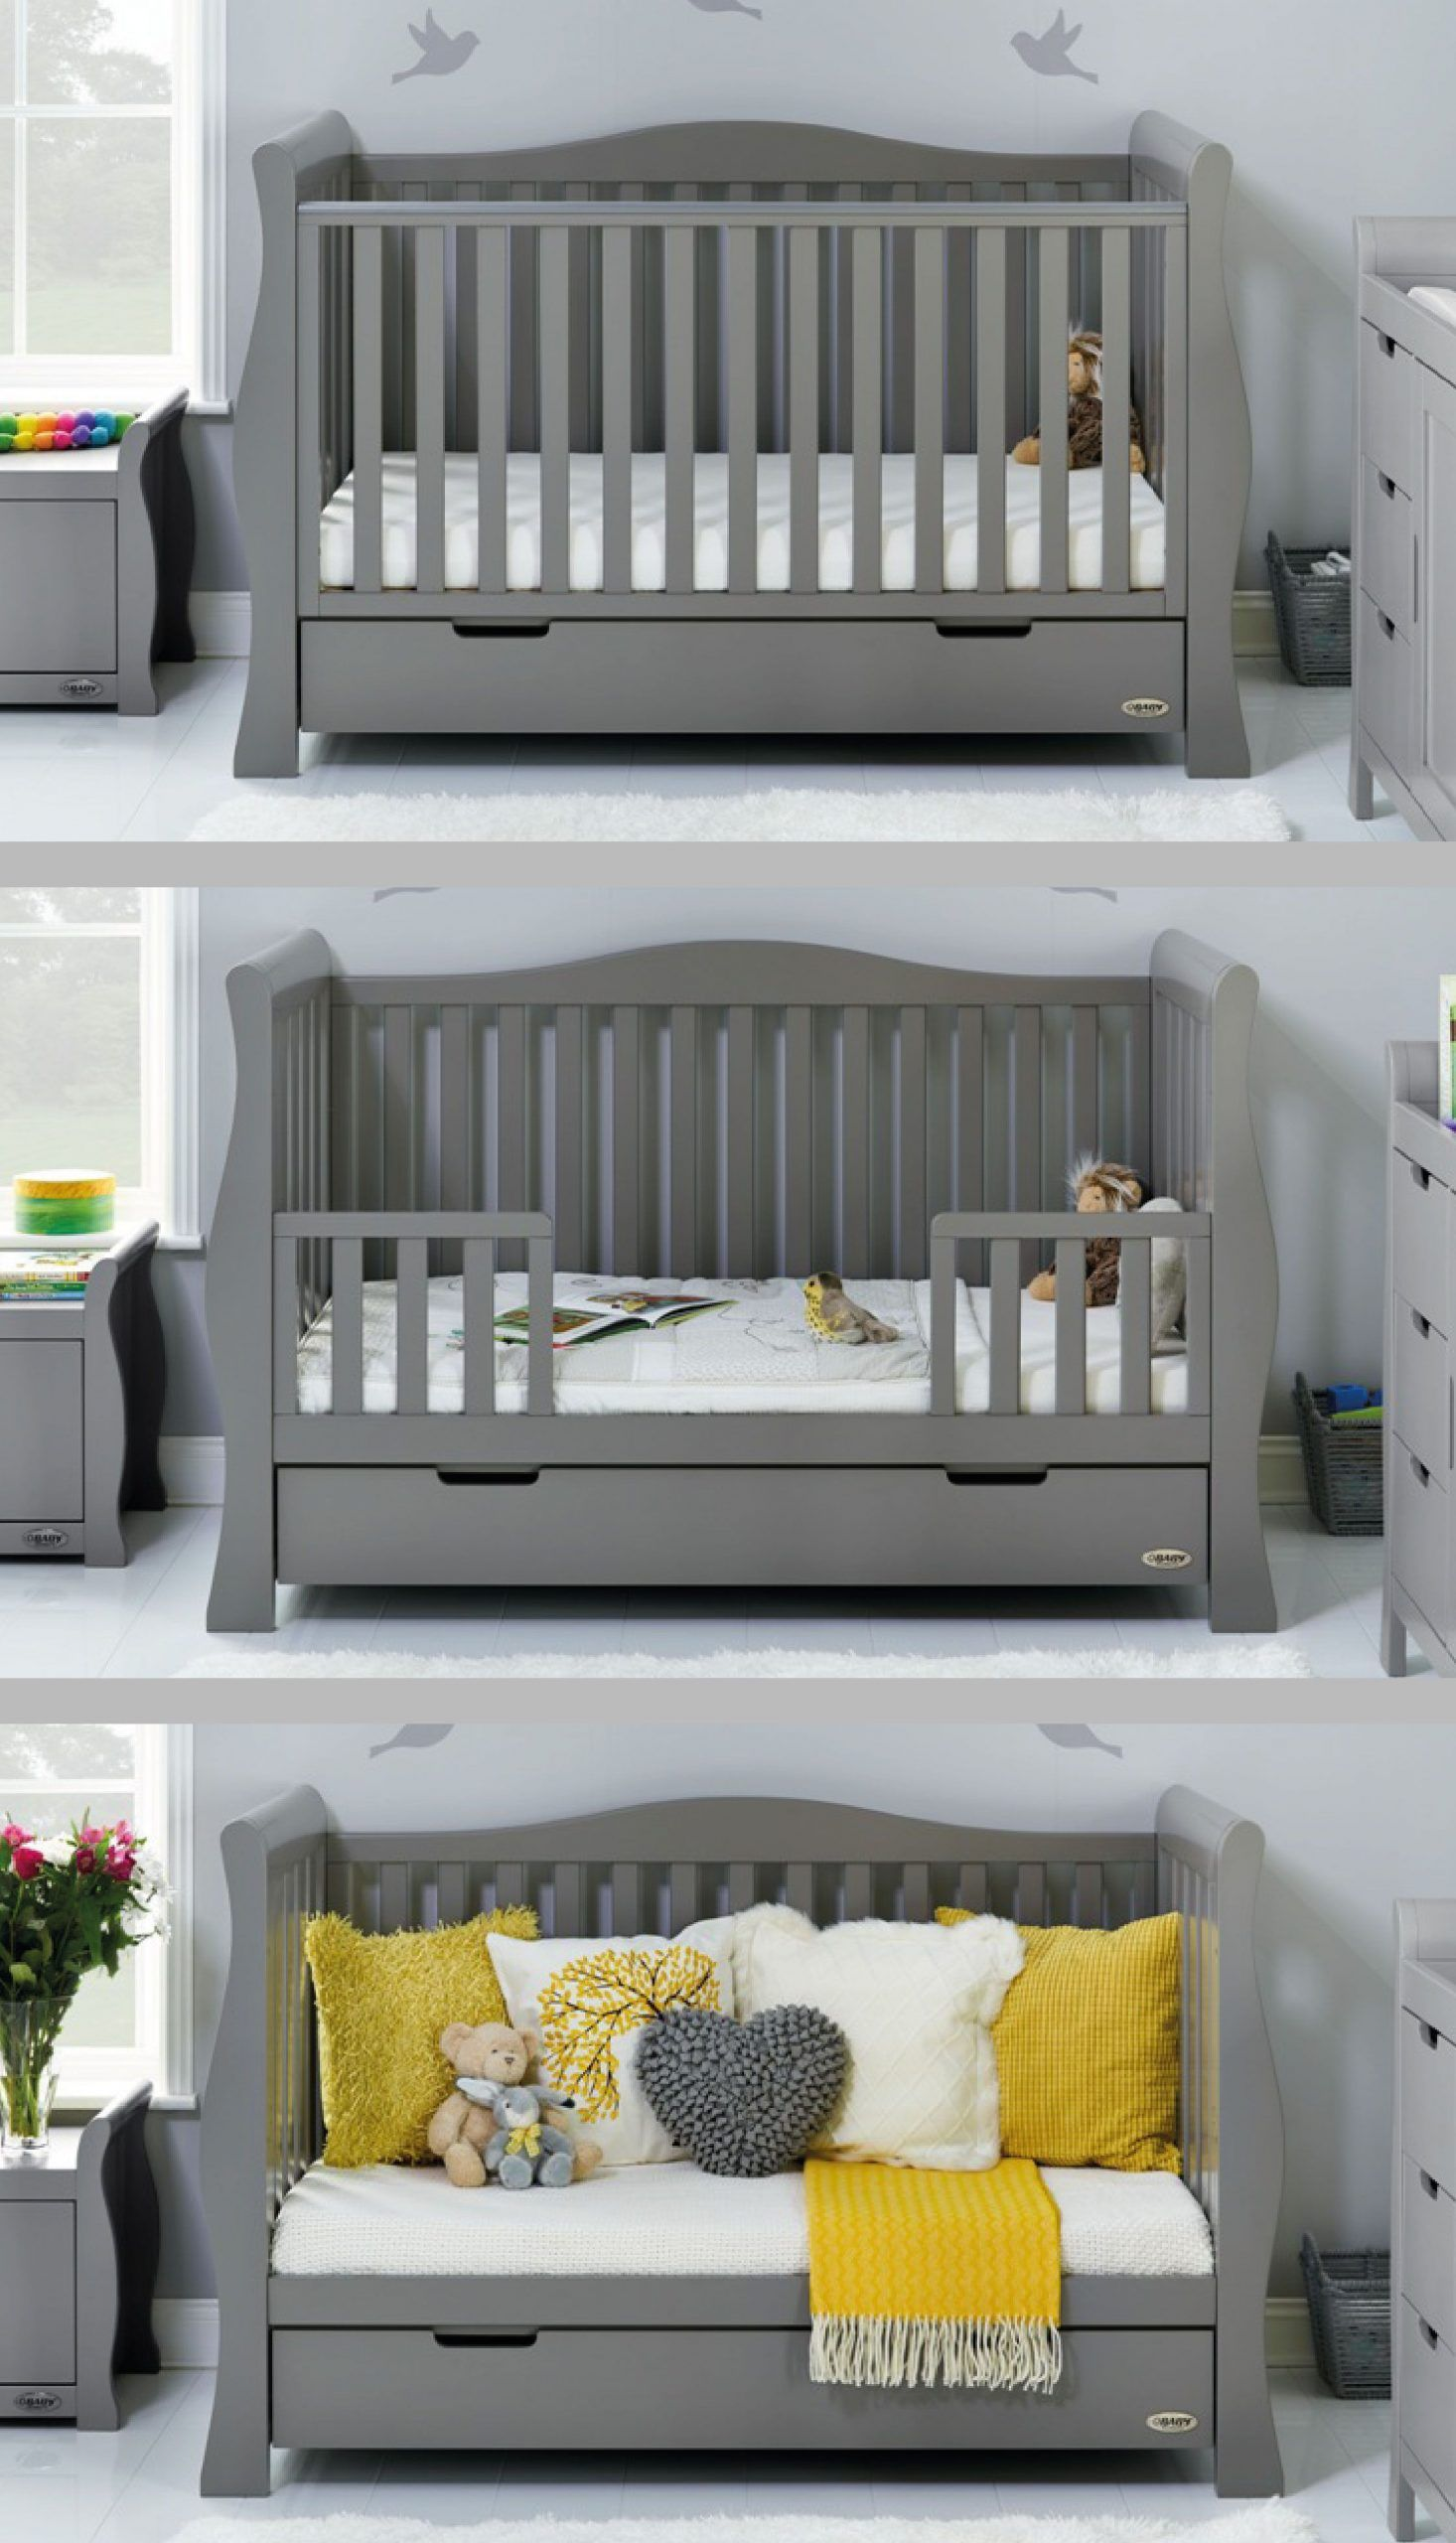 Obaby Stamford Luxe Sleigh Cot Bed – Taupe Grey . . . #baby #nursery #babynurser…